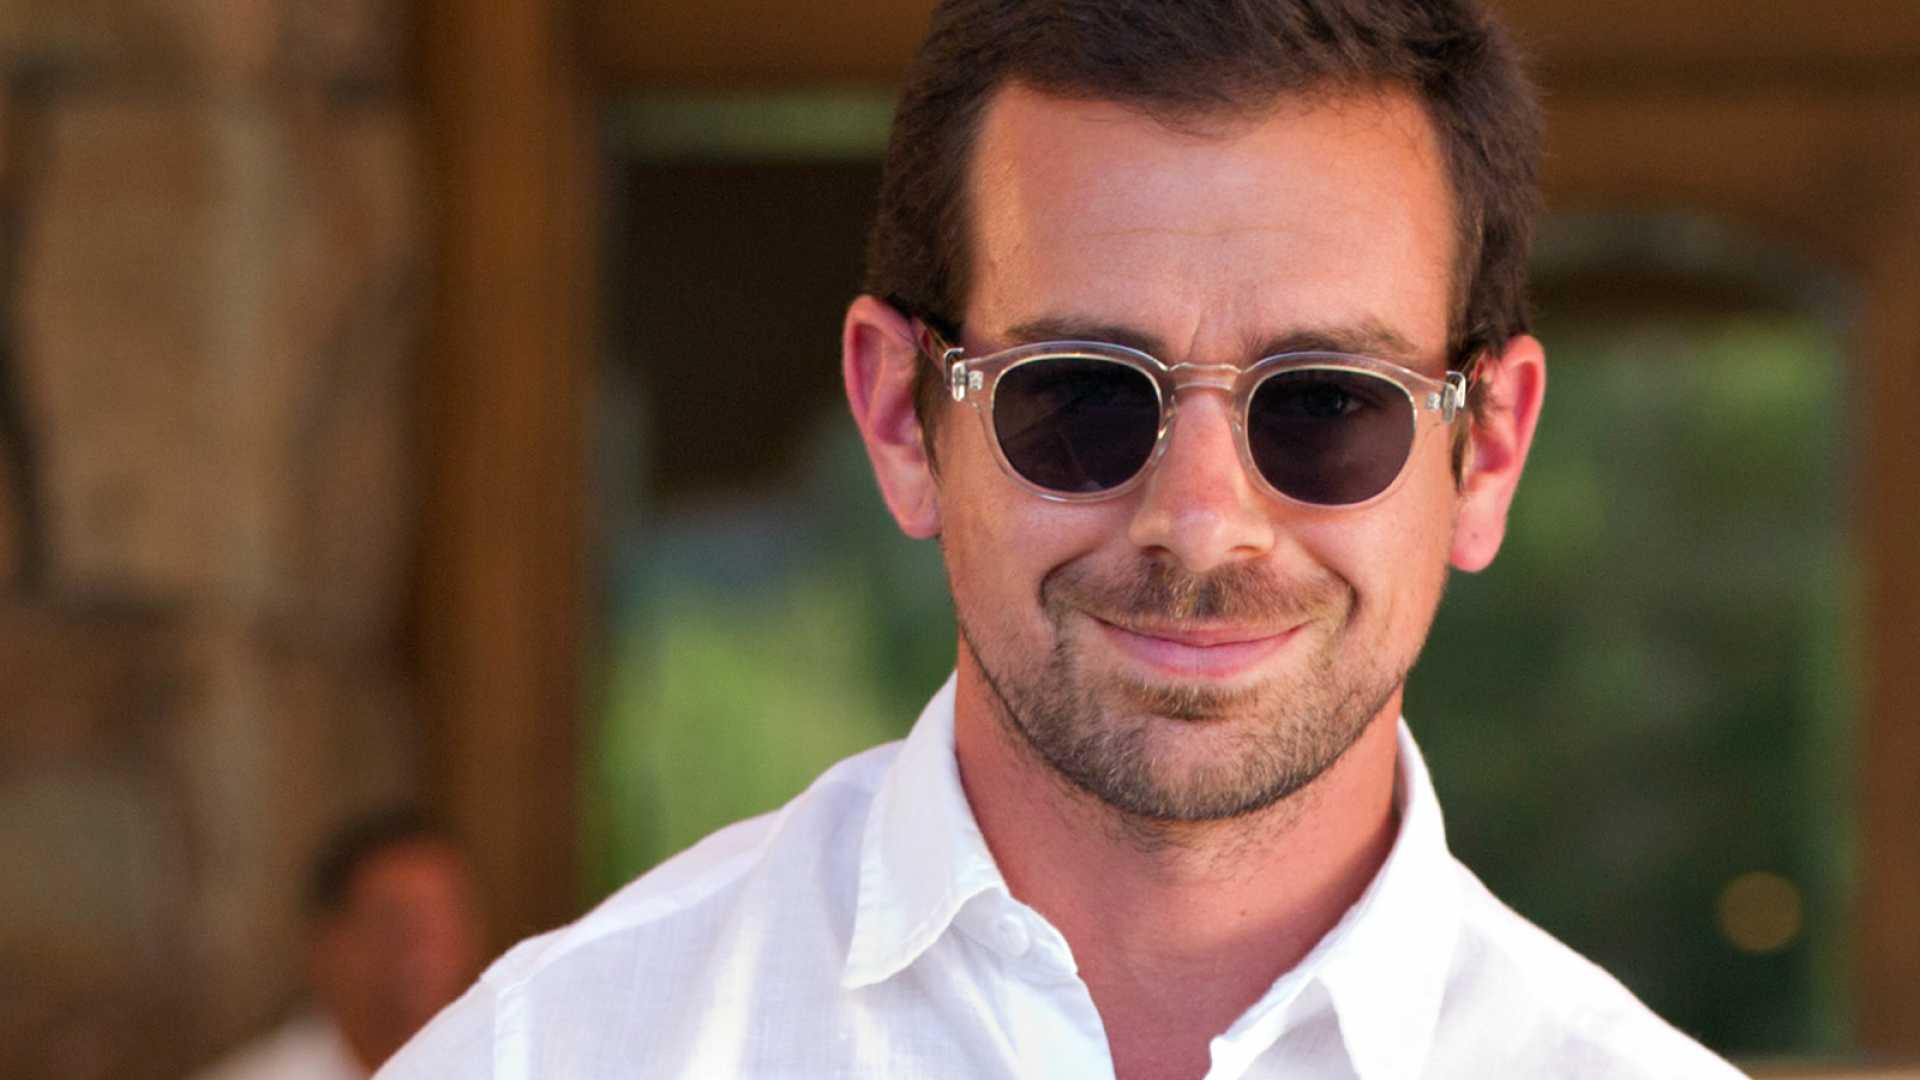 Jack Dorsey: Be Totally Transparent With Employees